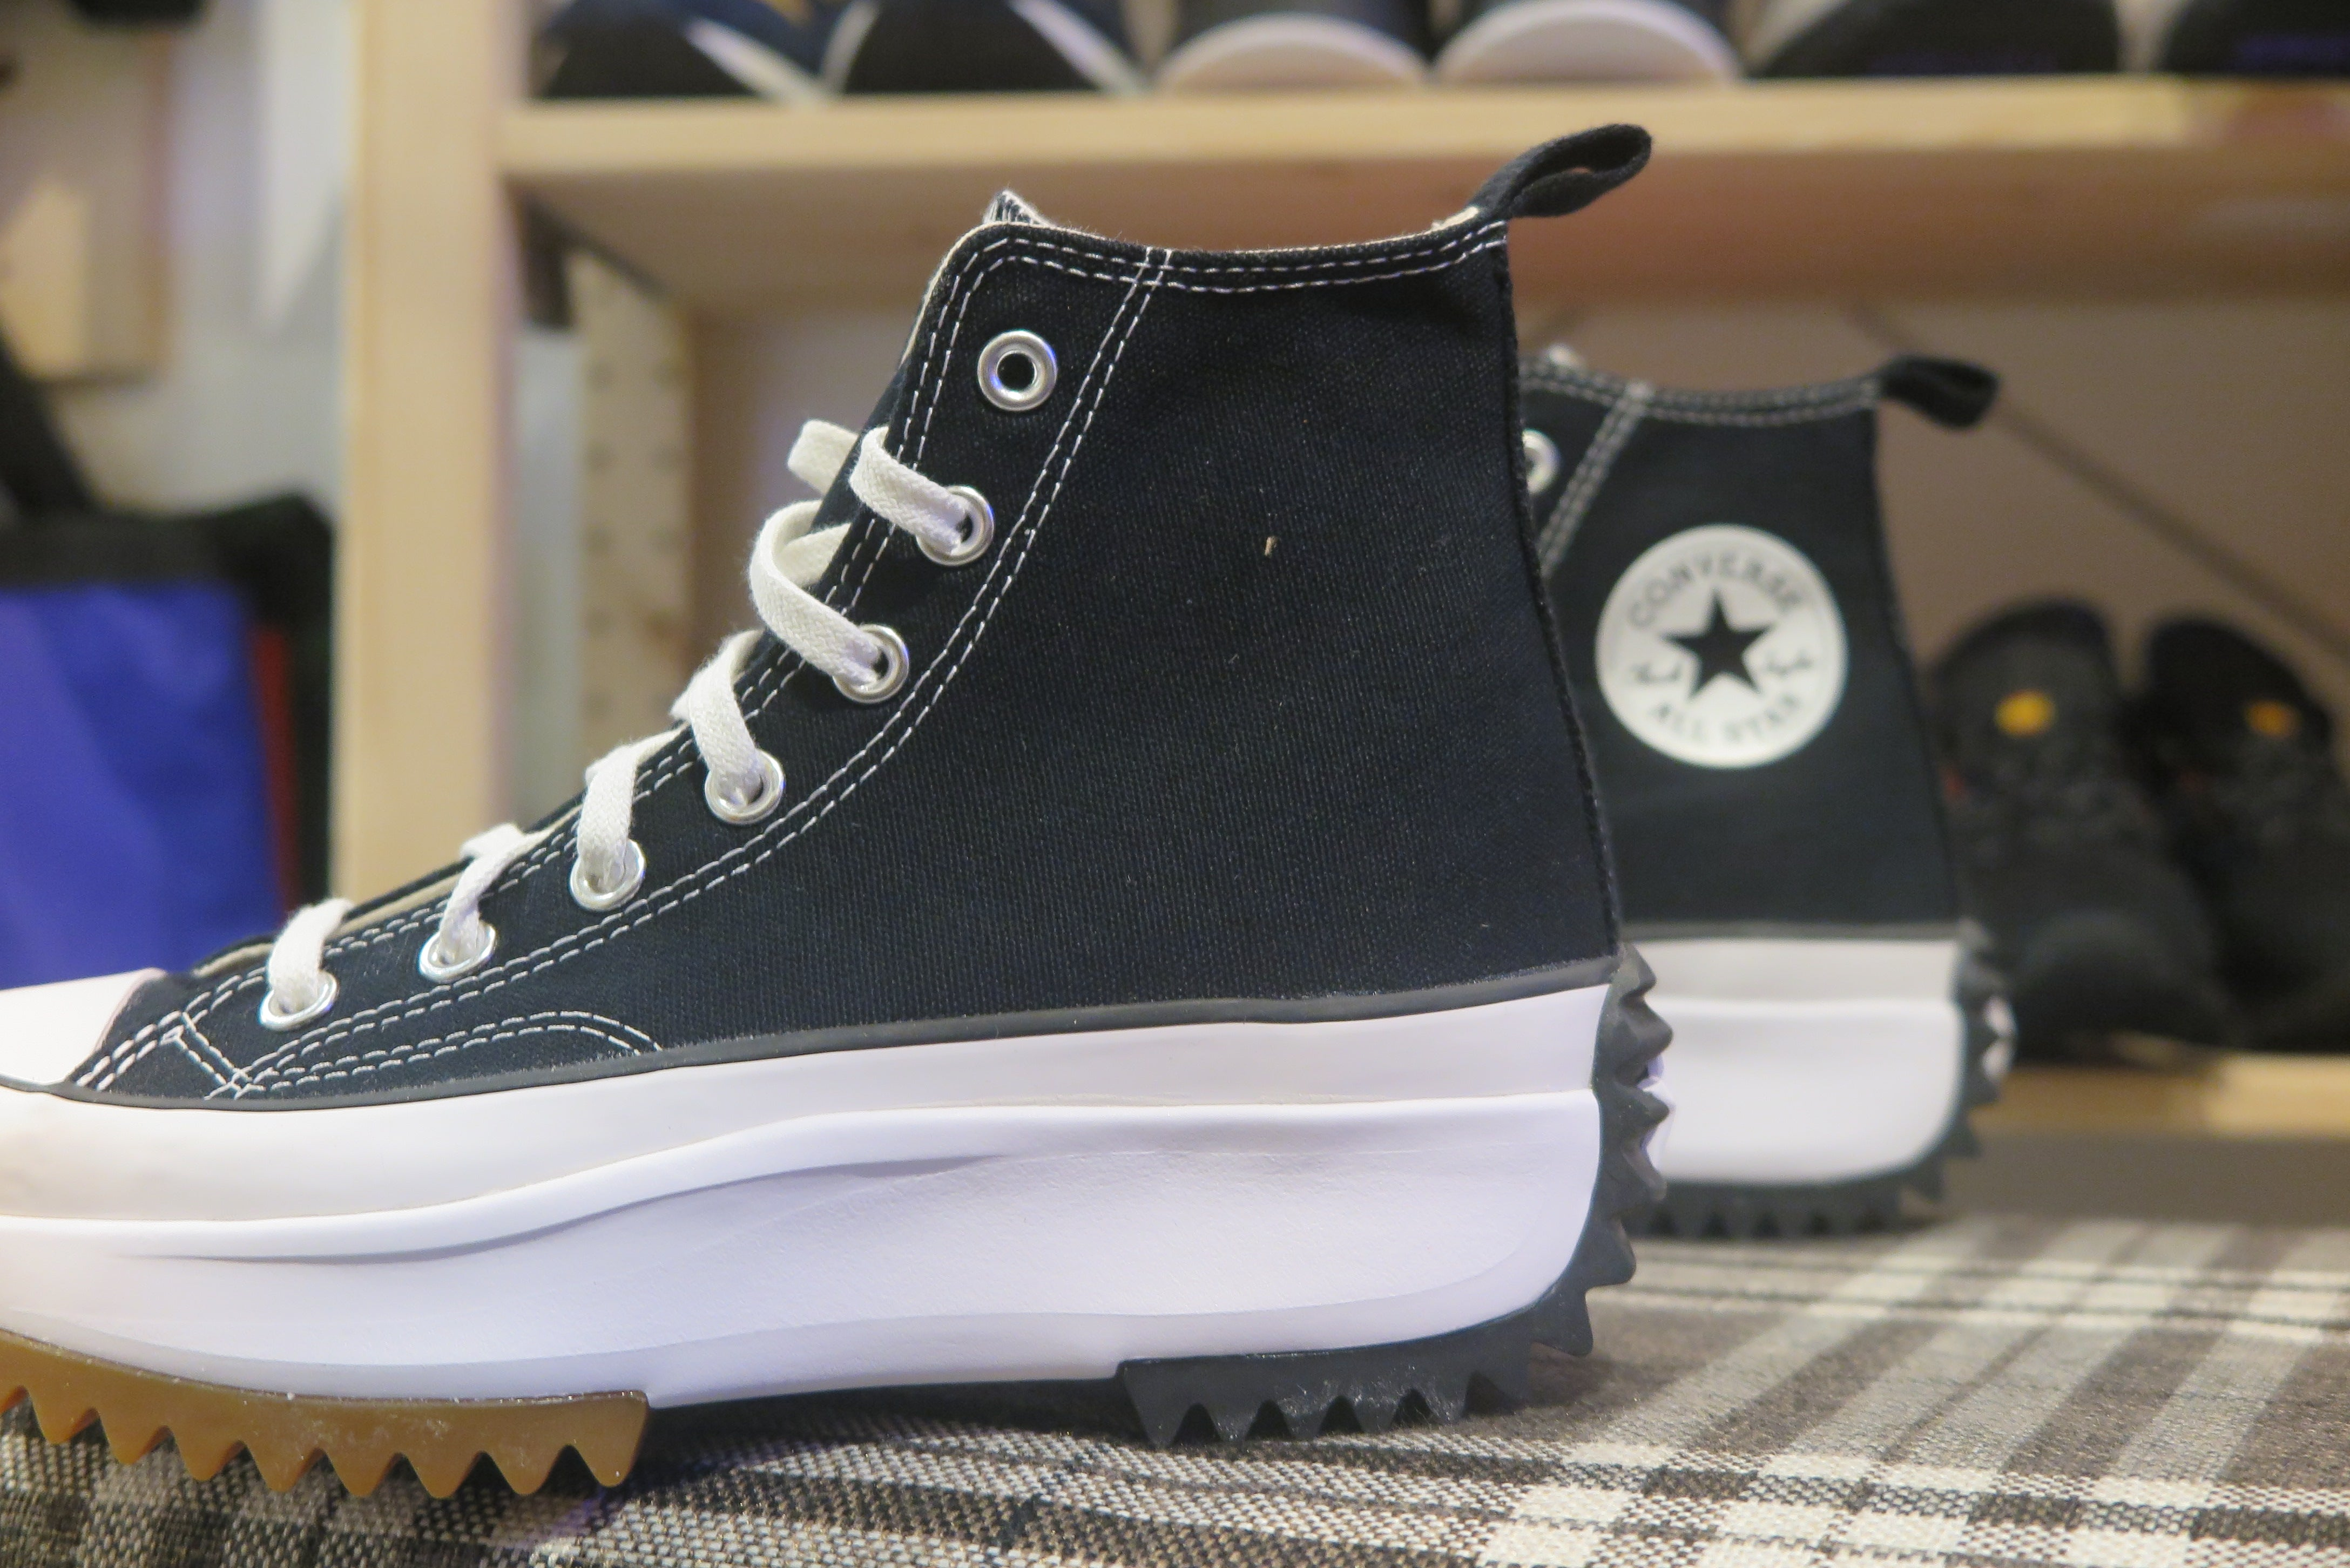 Converse Run Star Hike Hi - Black/White/Gum #166800C-Sneakers-Navy Selected Shop